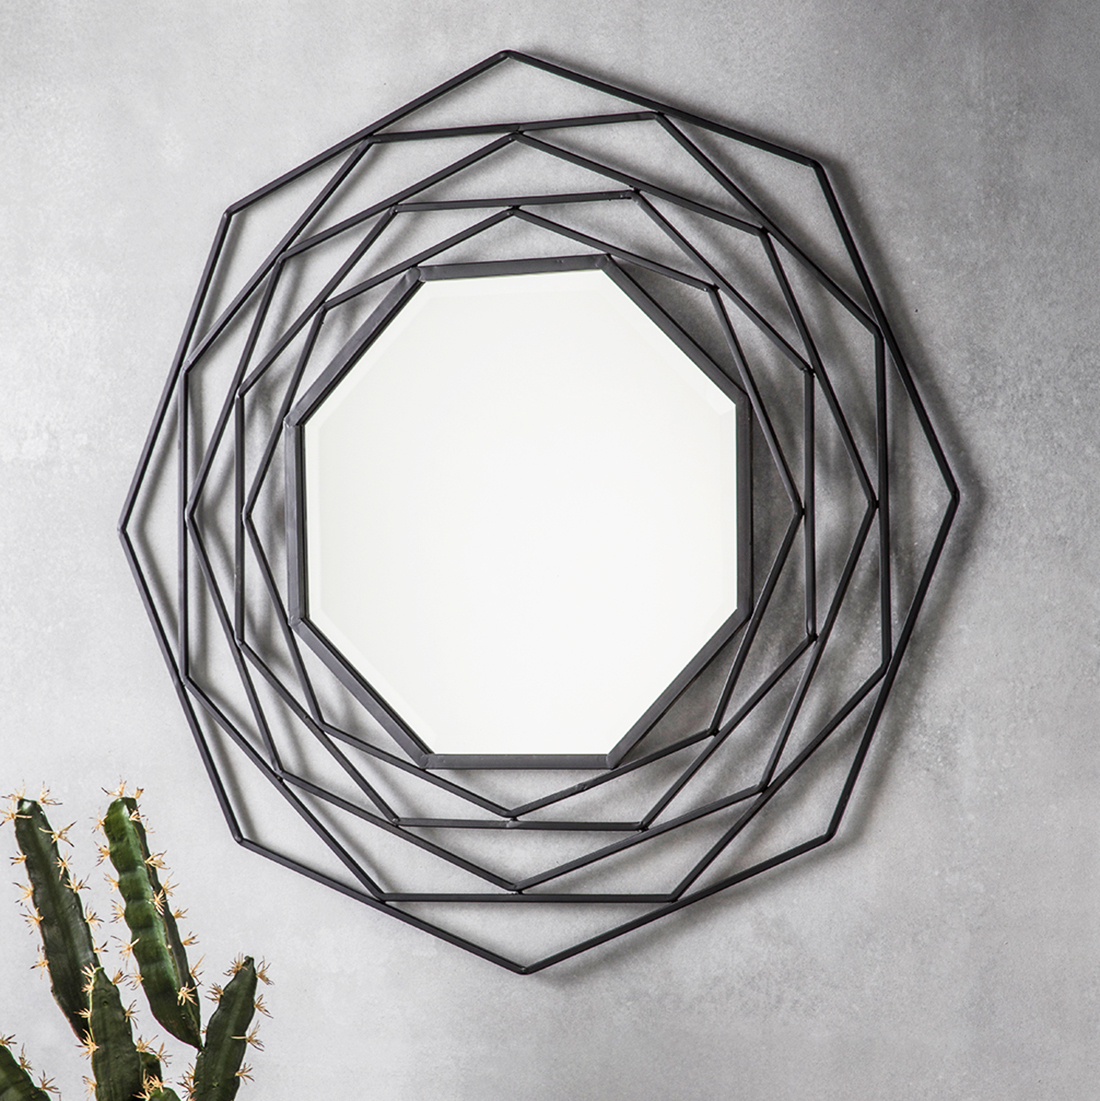 Octagonal Black Geometric Wall Mirror Pertaining To Industrial Modern & Contemporary Wall Mirrors (View 27 of 30)